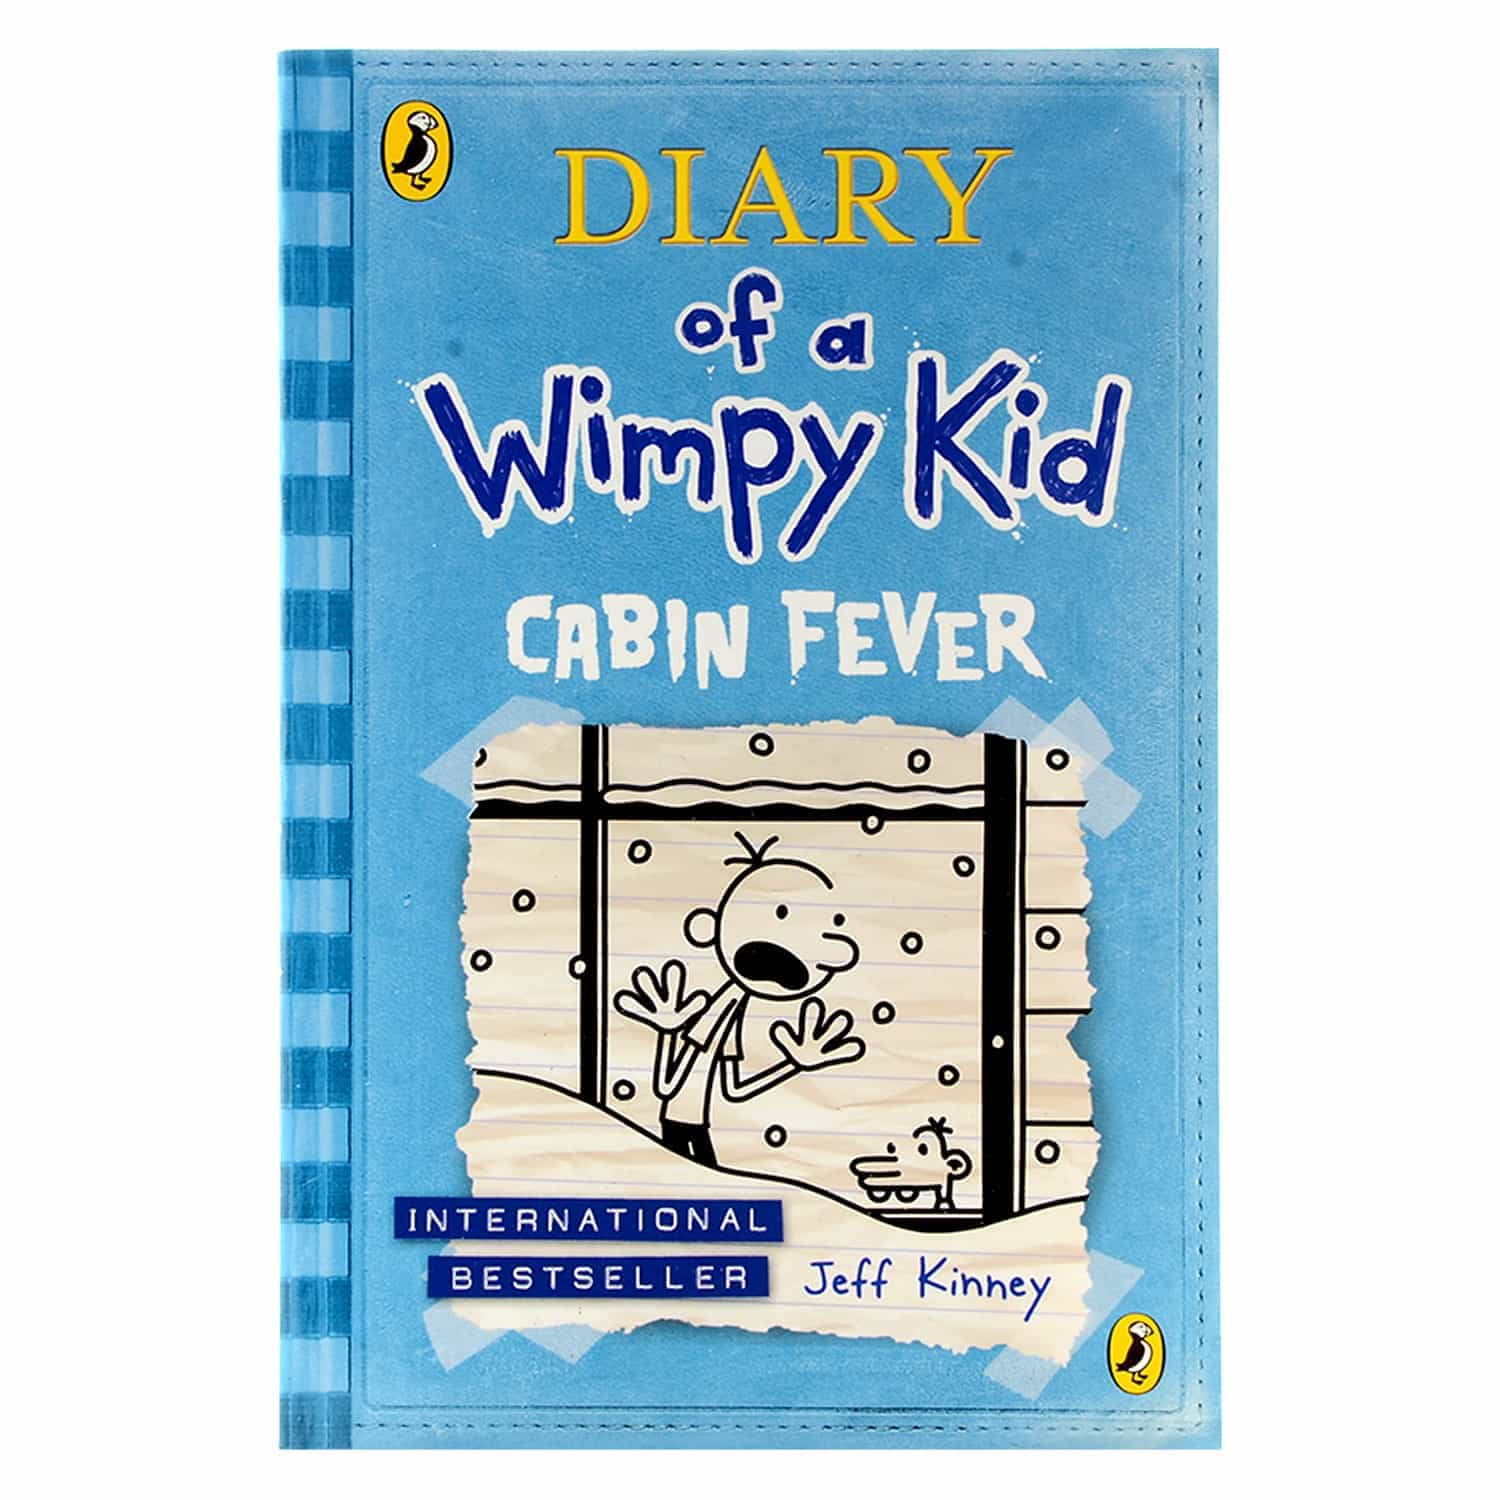 Diary of a Wimpy Kid Series- Cabin Fever